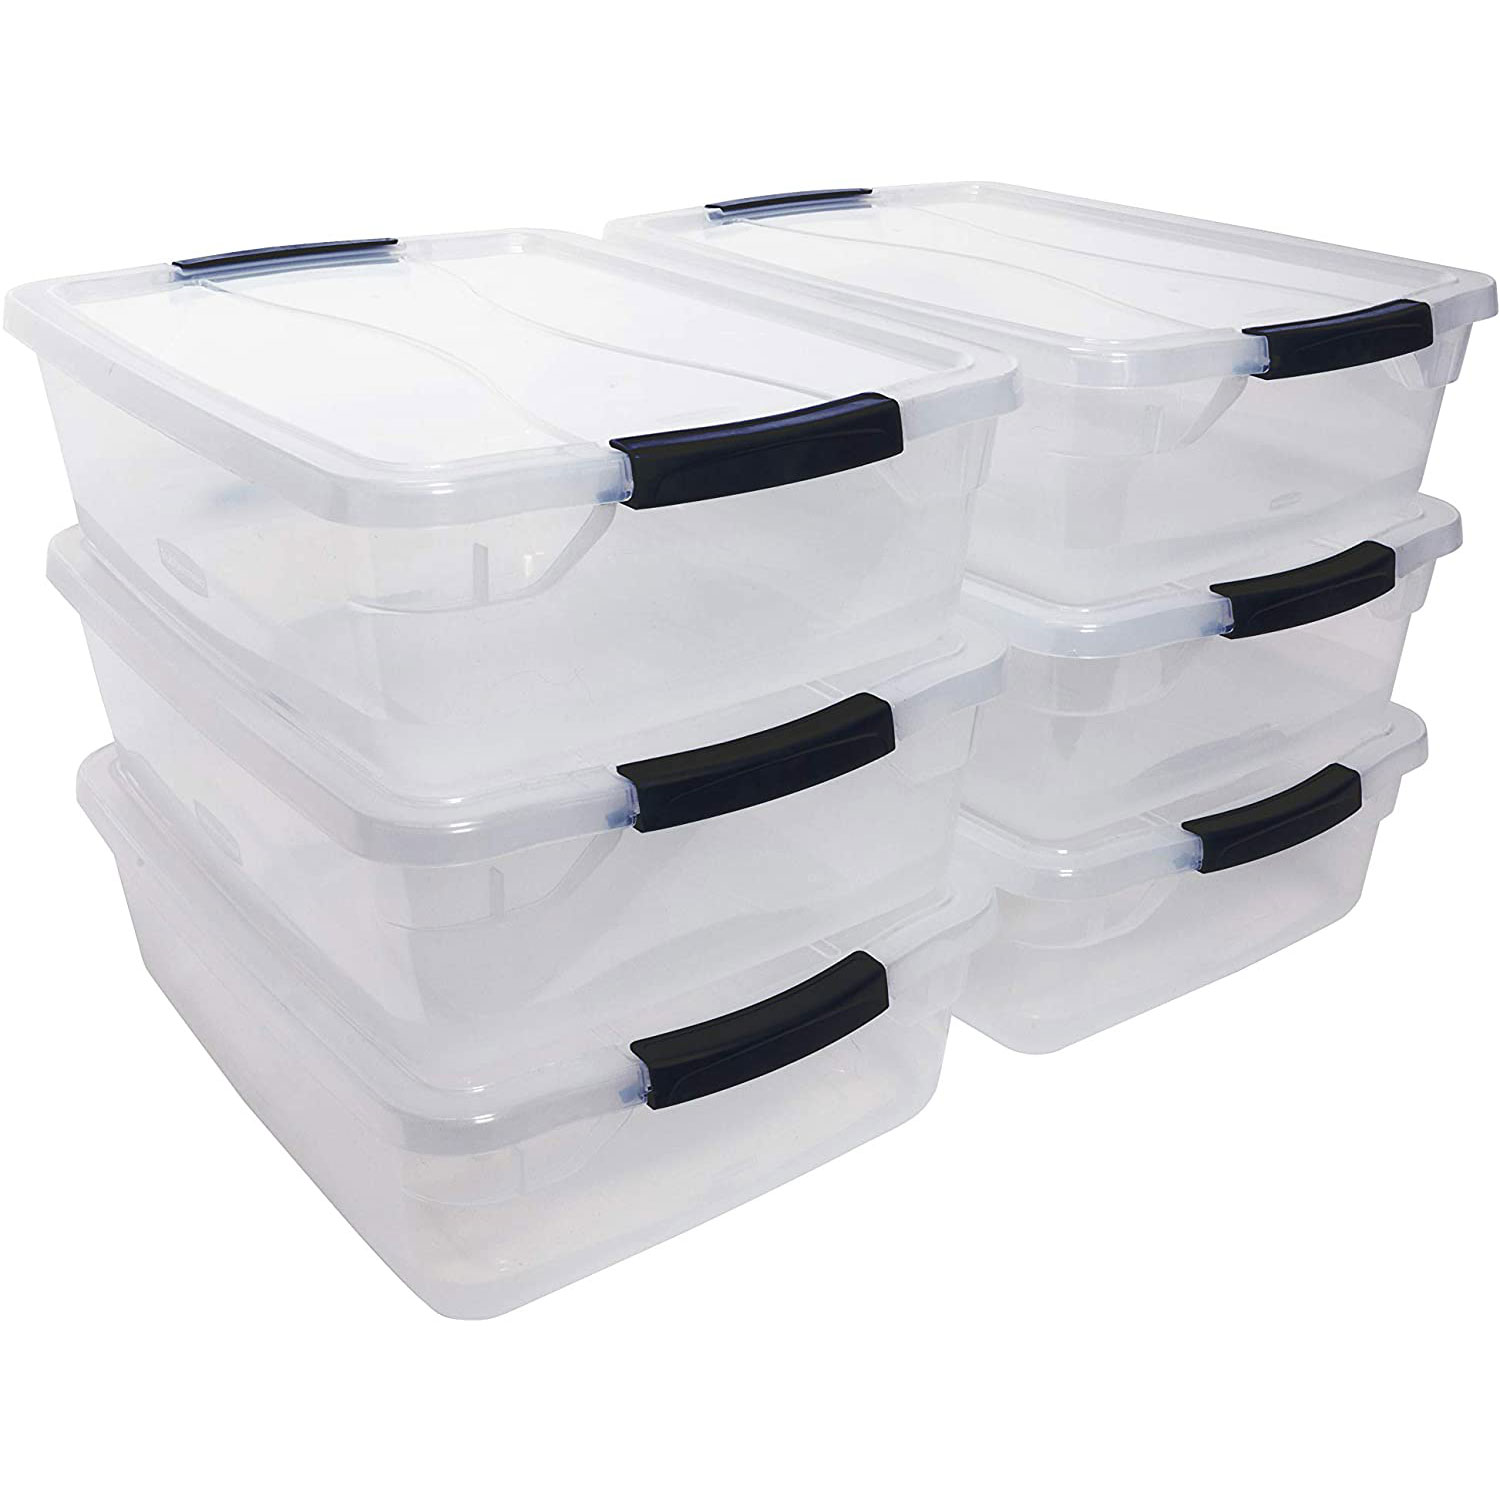 Plastic Pack of 2 6 Quart Capacity, Choice Food Storage Containers with Lids